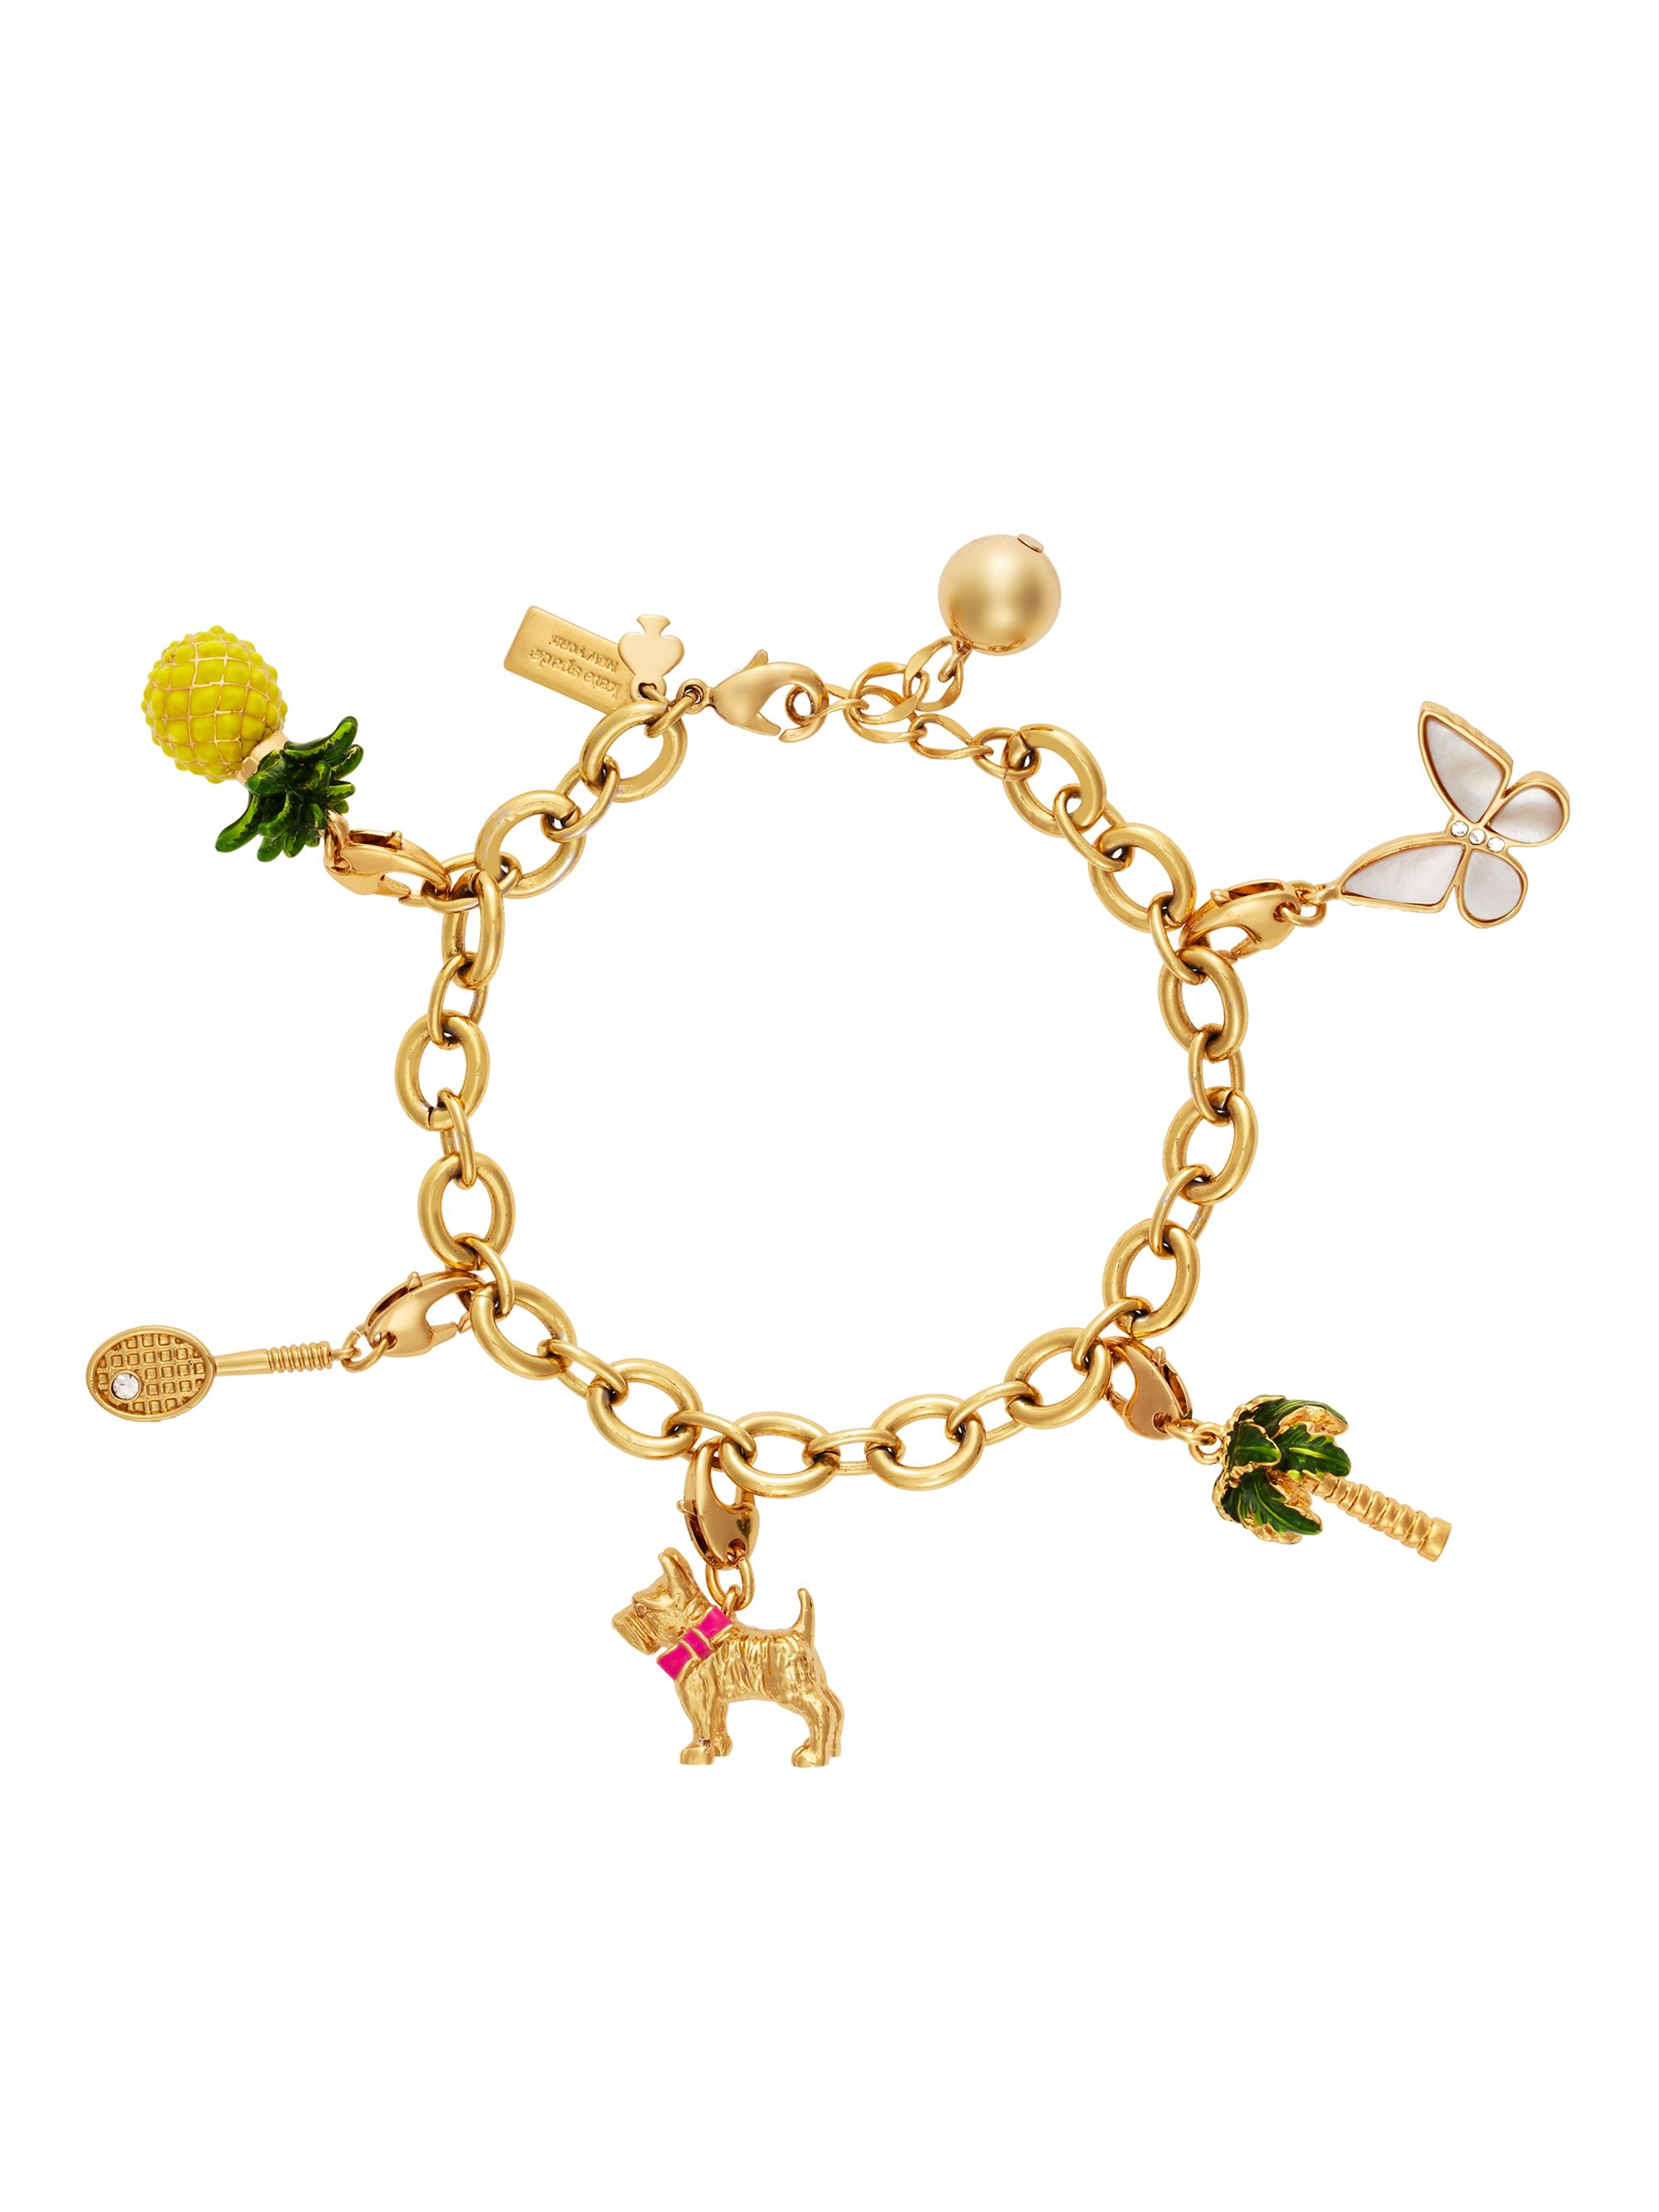 stars in charm en bangle bangles libra bracelets gb jewellery the